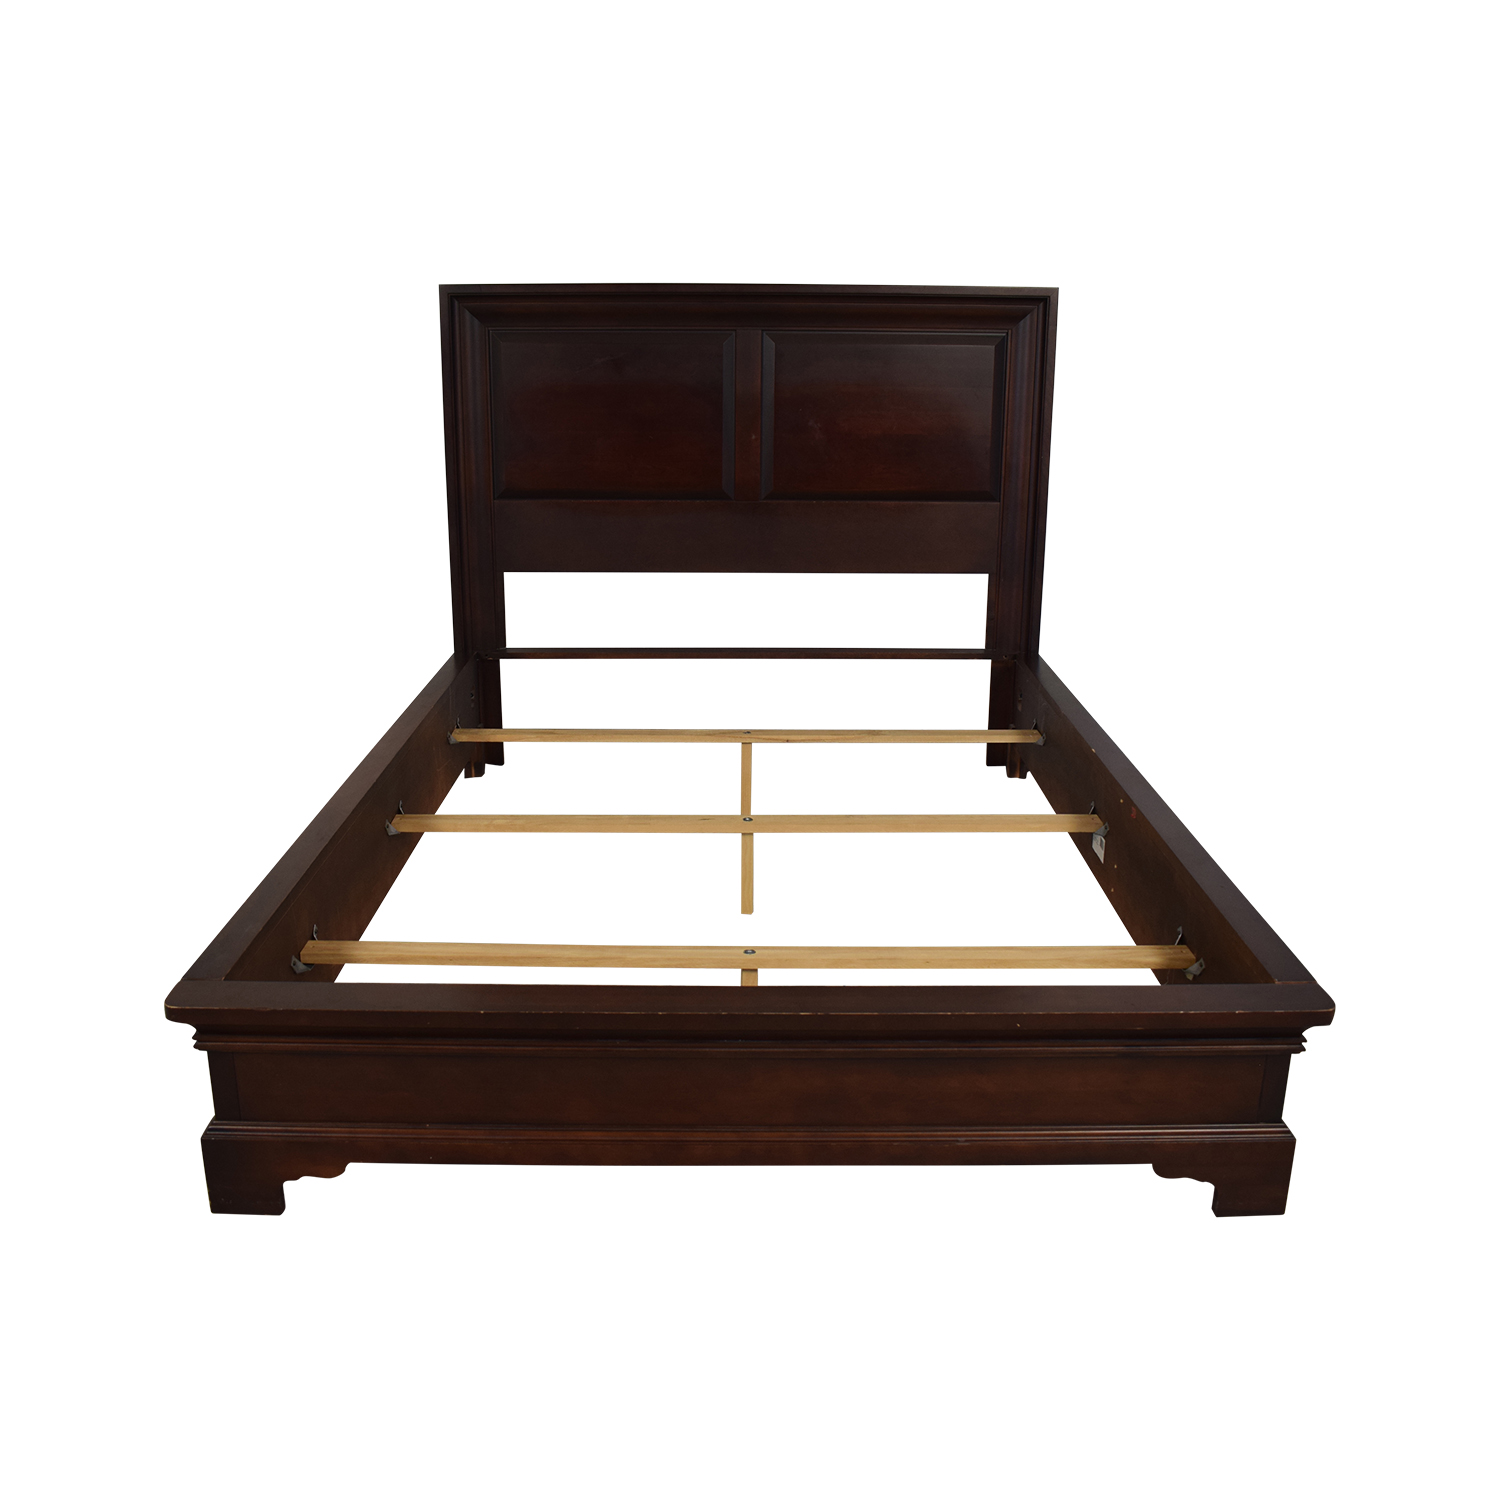 Shermag Queen Bed Frame / Beds